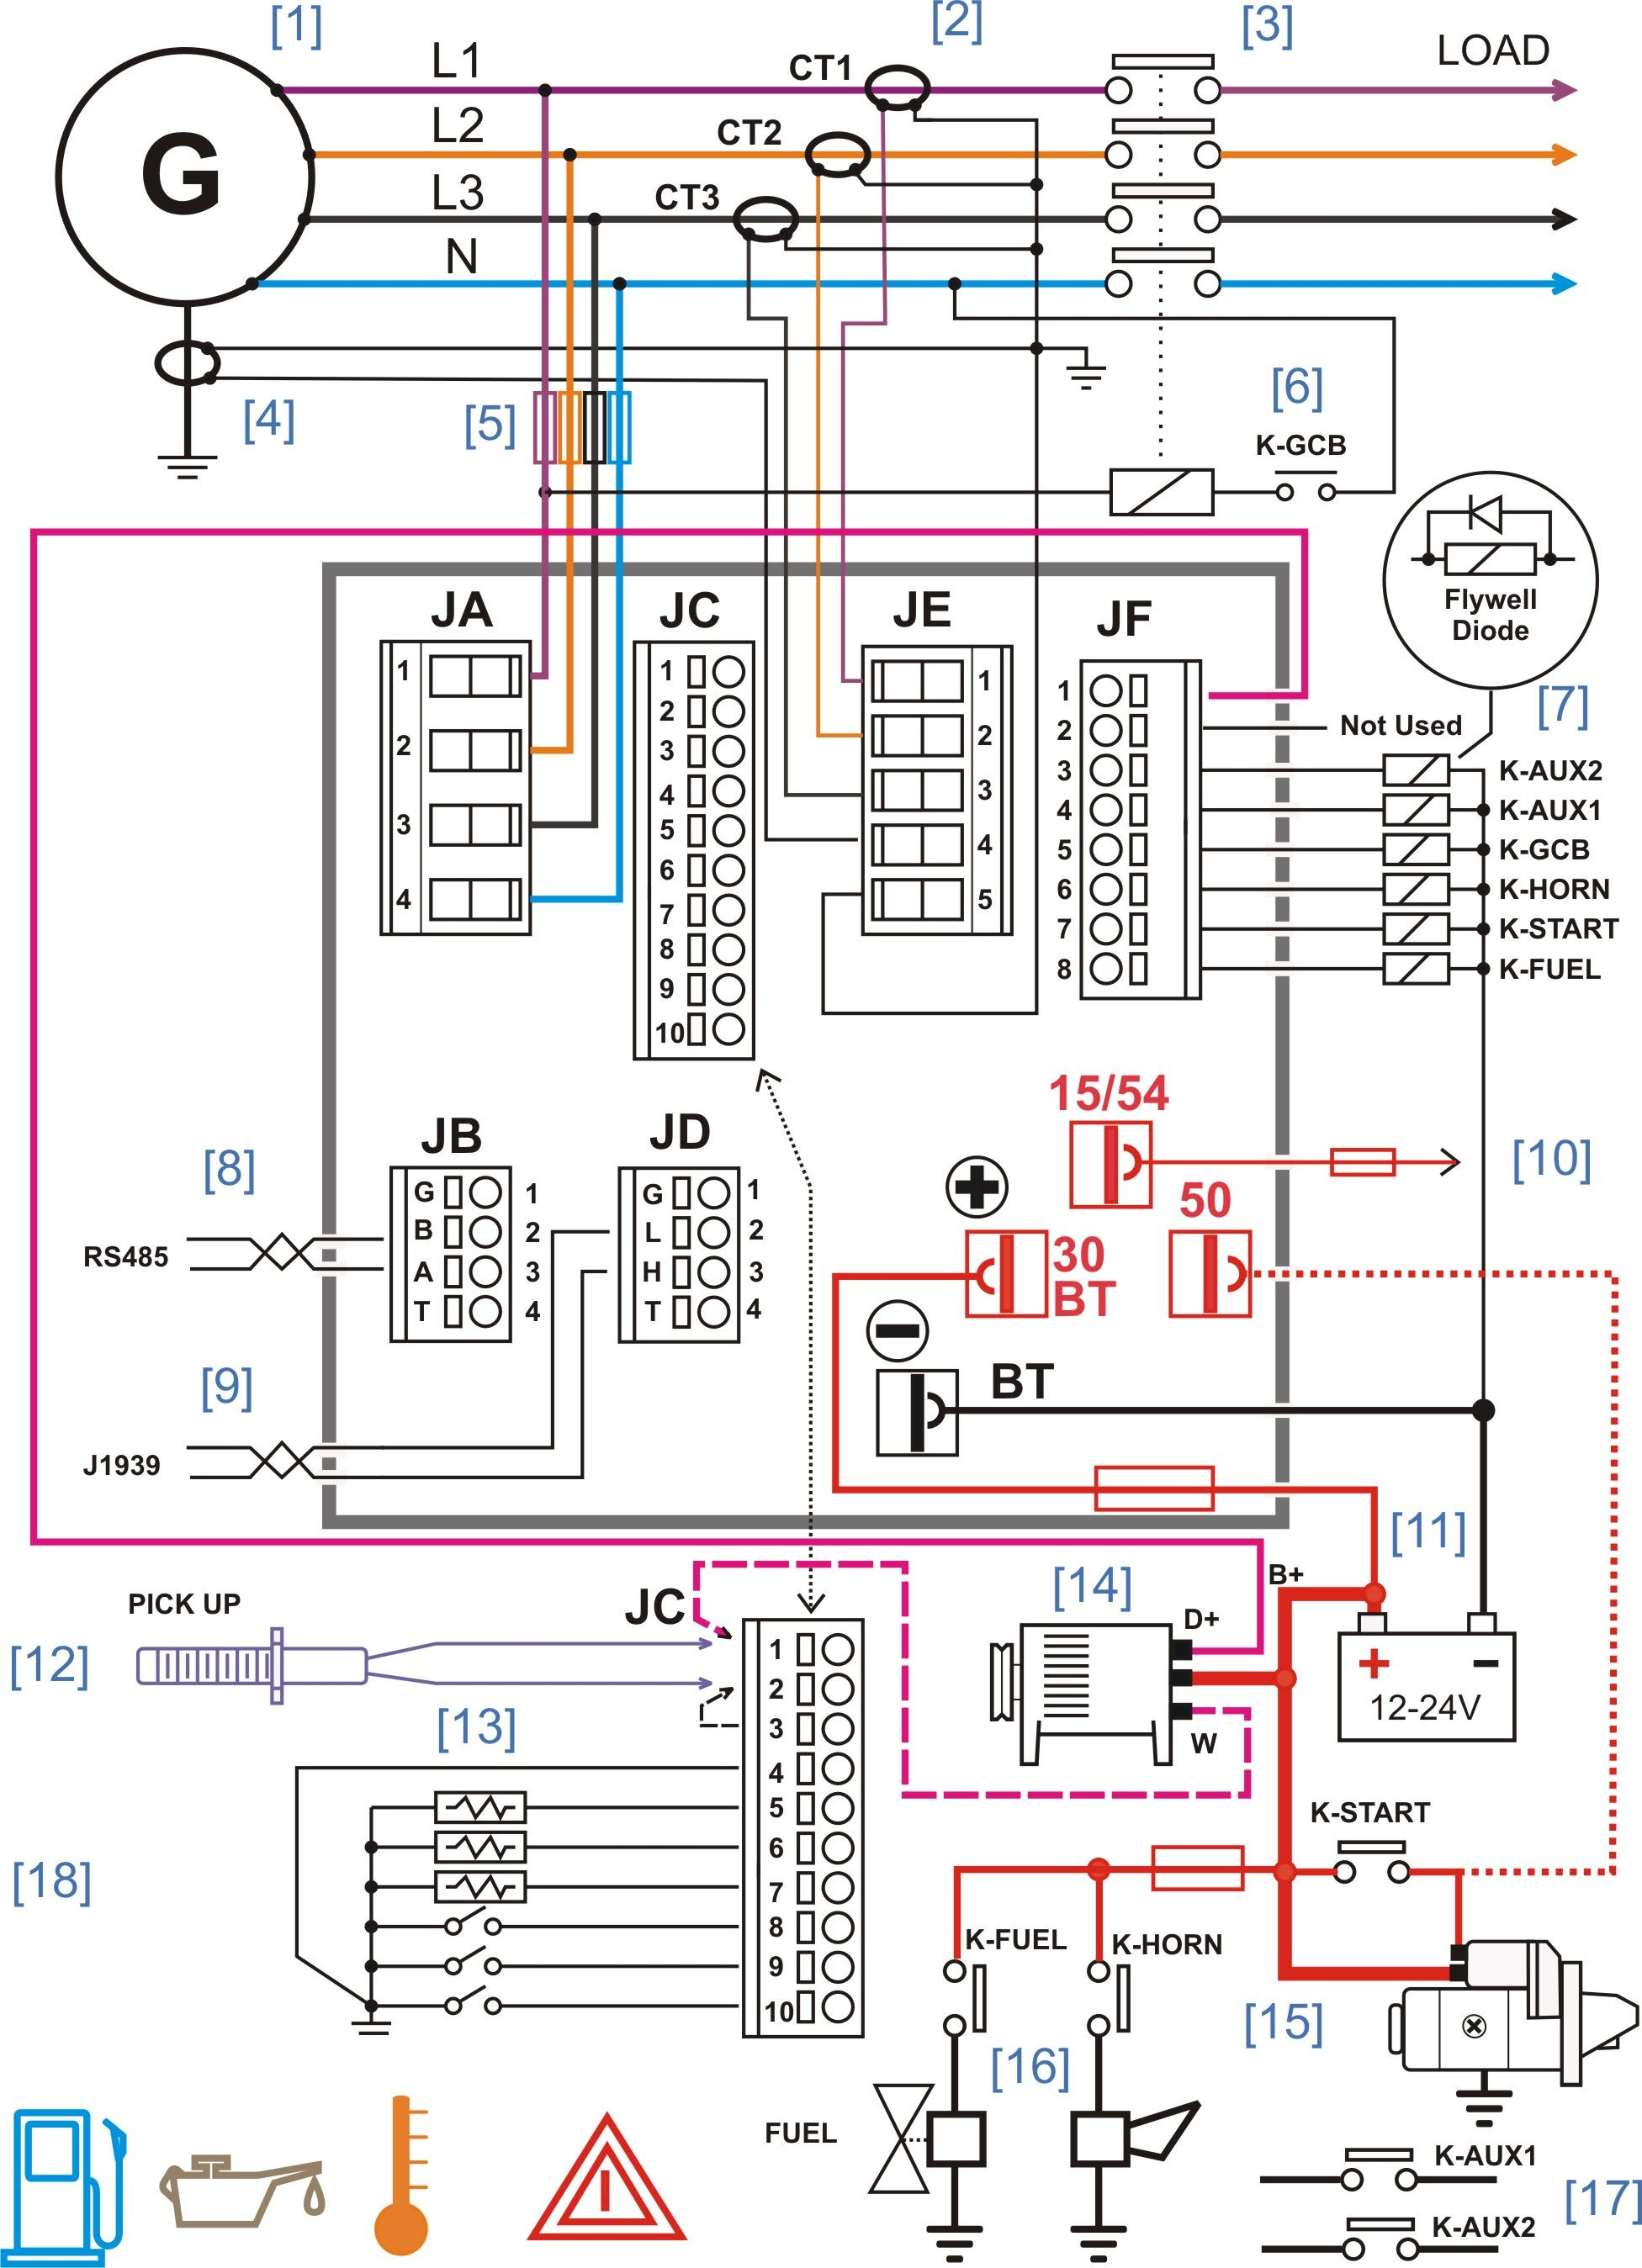 diesel generator control panel wiring diagram | diesel ... engine control wiring diagram #9